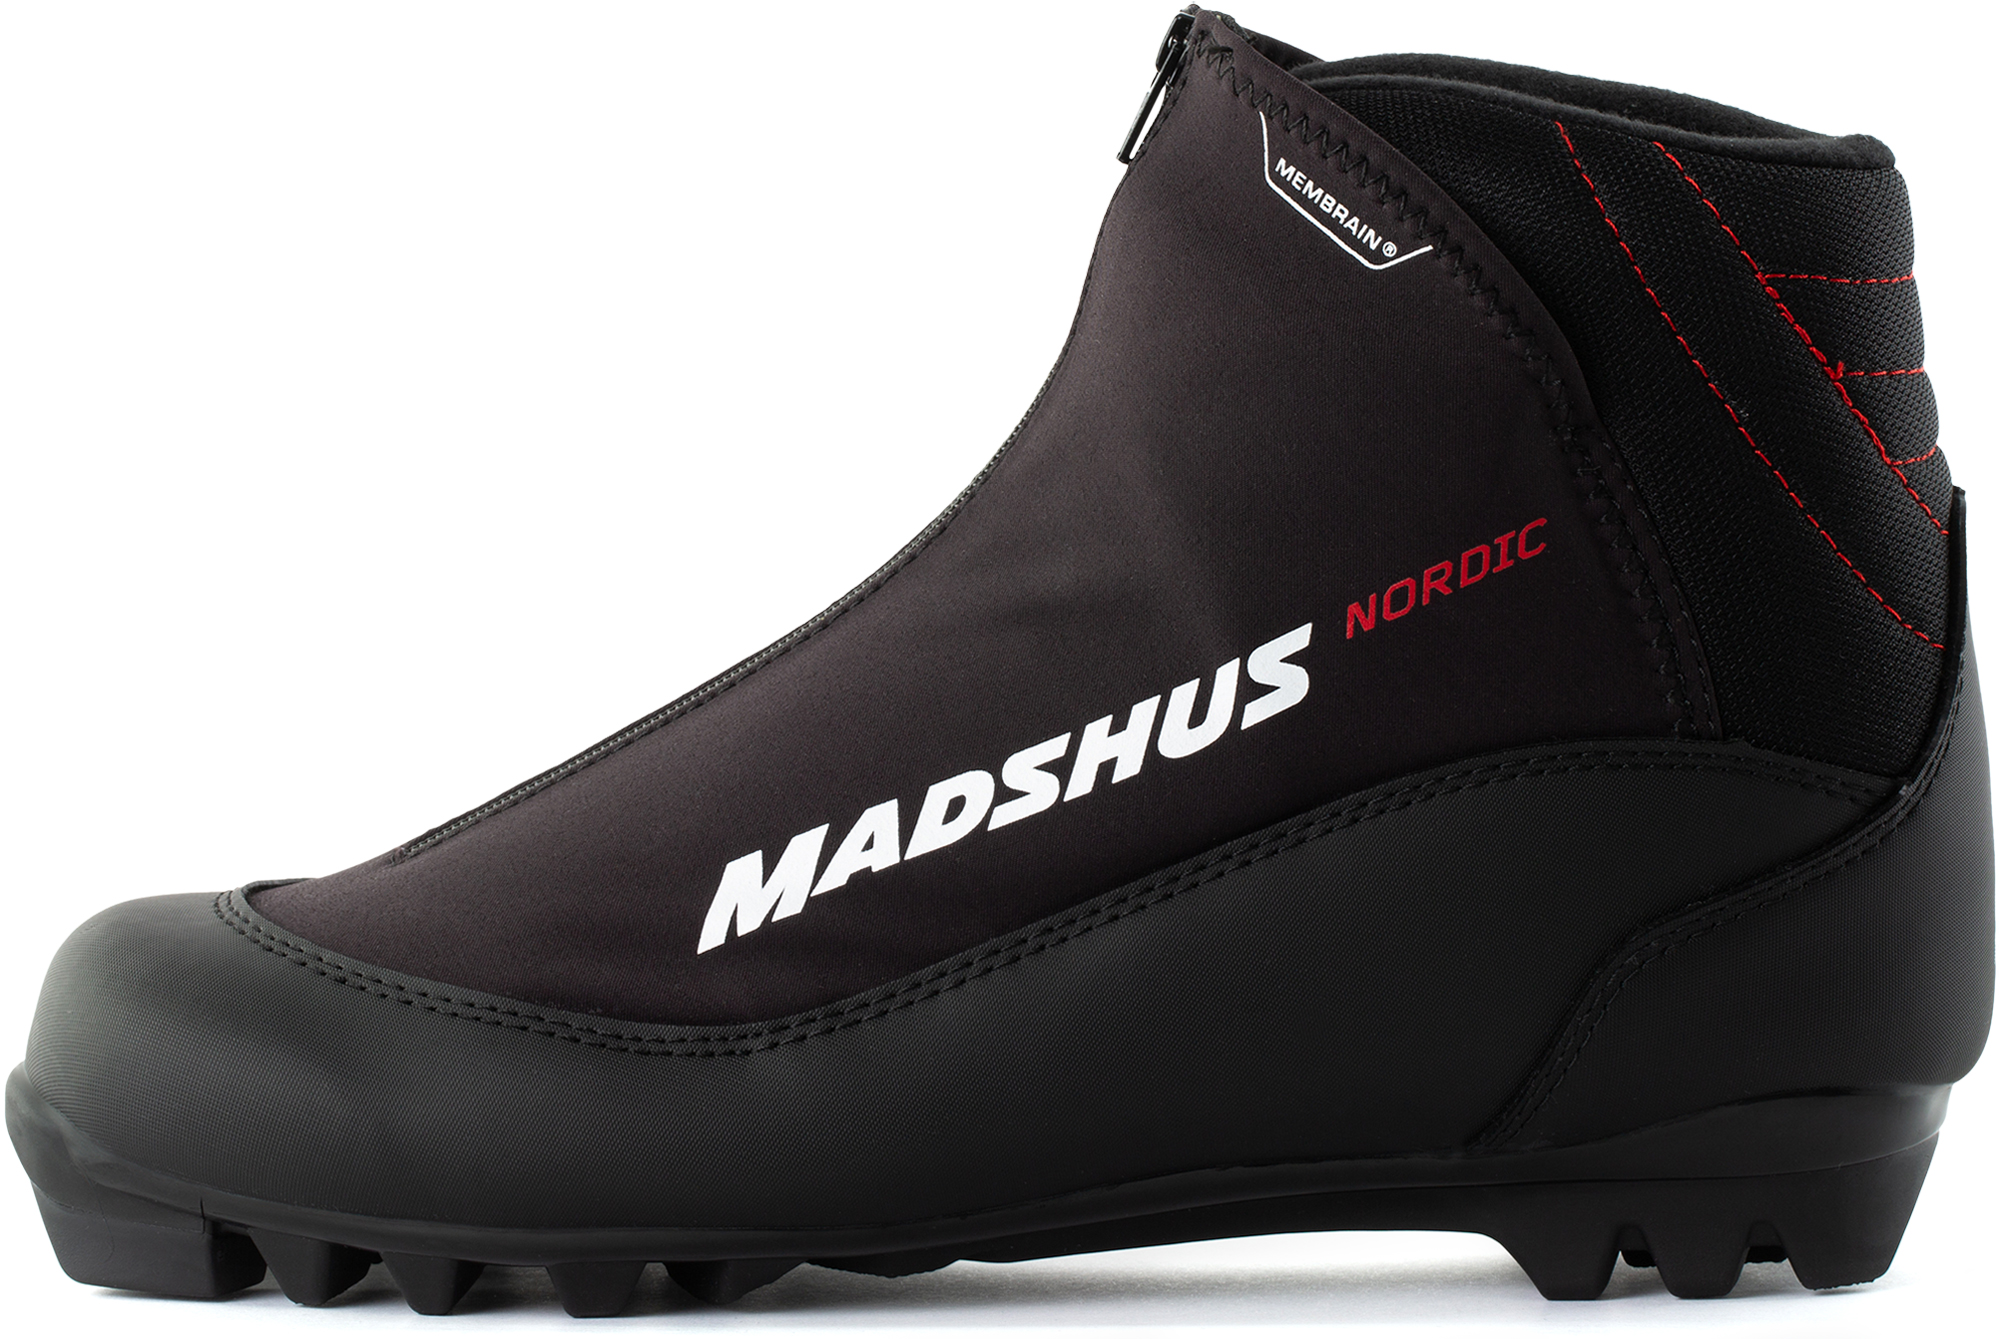 Madshus NORDIC Adult cross-country ski boots cross country